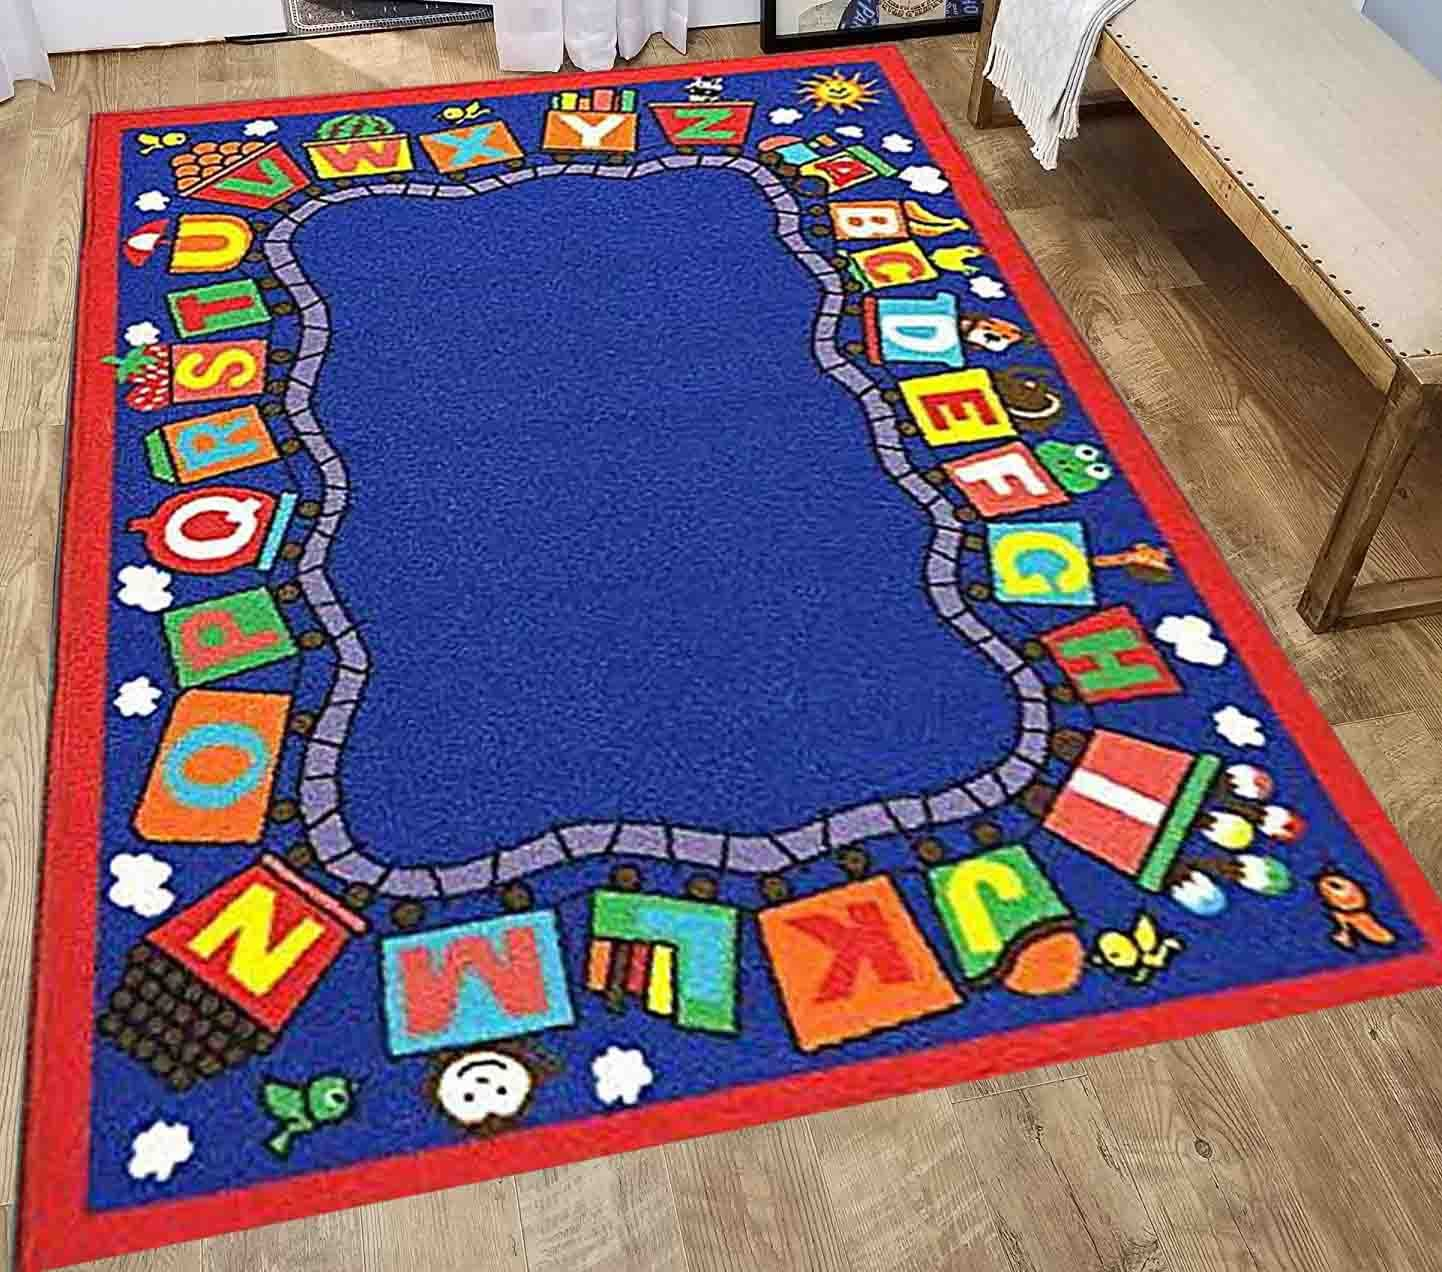 8x10 Kids Boys Children Toddler Playroom Rug Nursery Room Rug Bedroom Rug Fun Colorful ( Train ) by LA Rug Linens (Image #1)